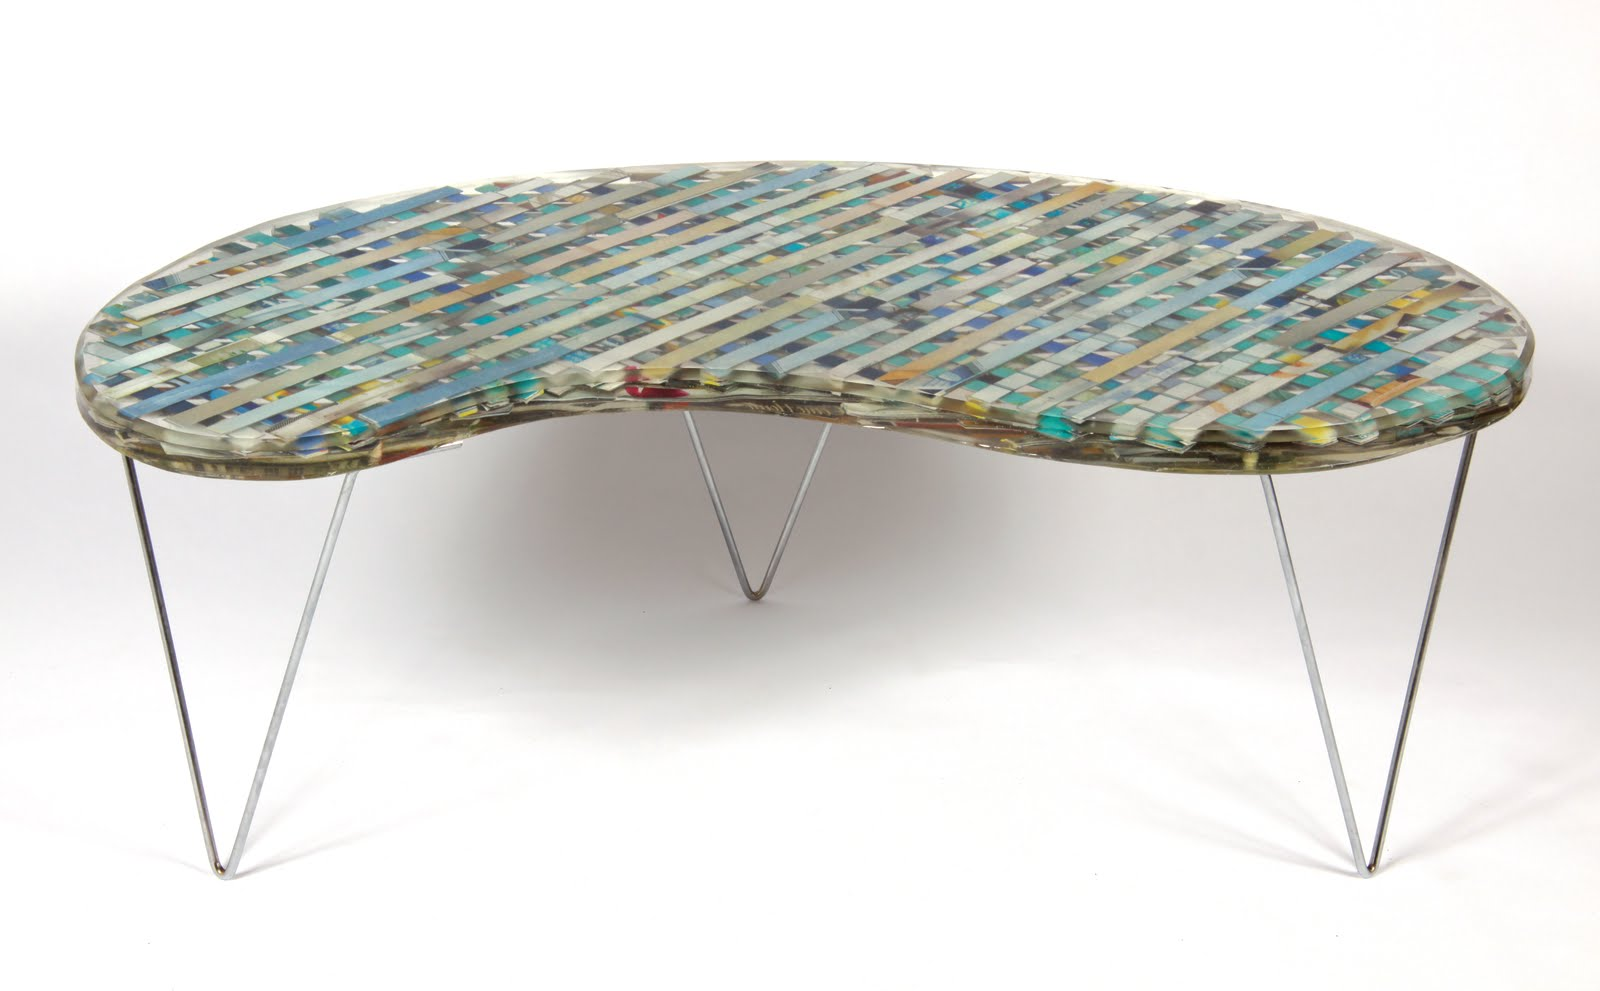 The AFH Blog: AFH Unveils Updated ReVision Furniture at NY Home ...